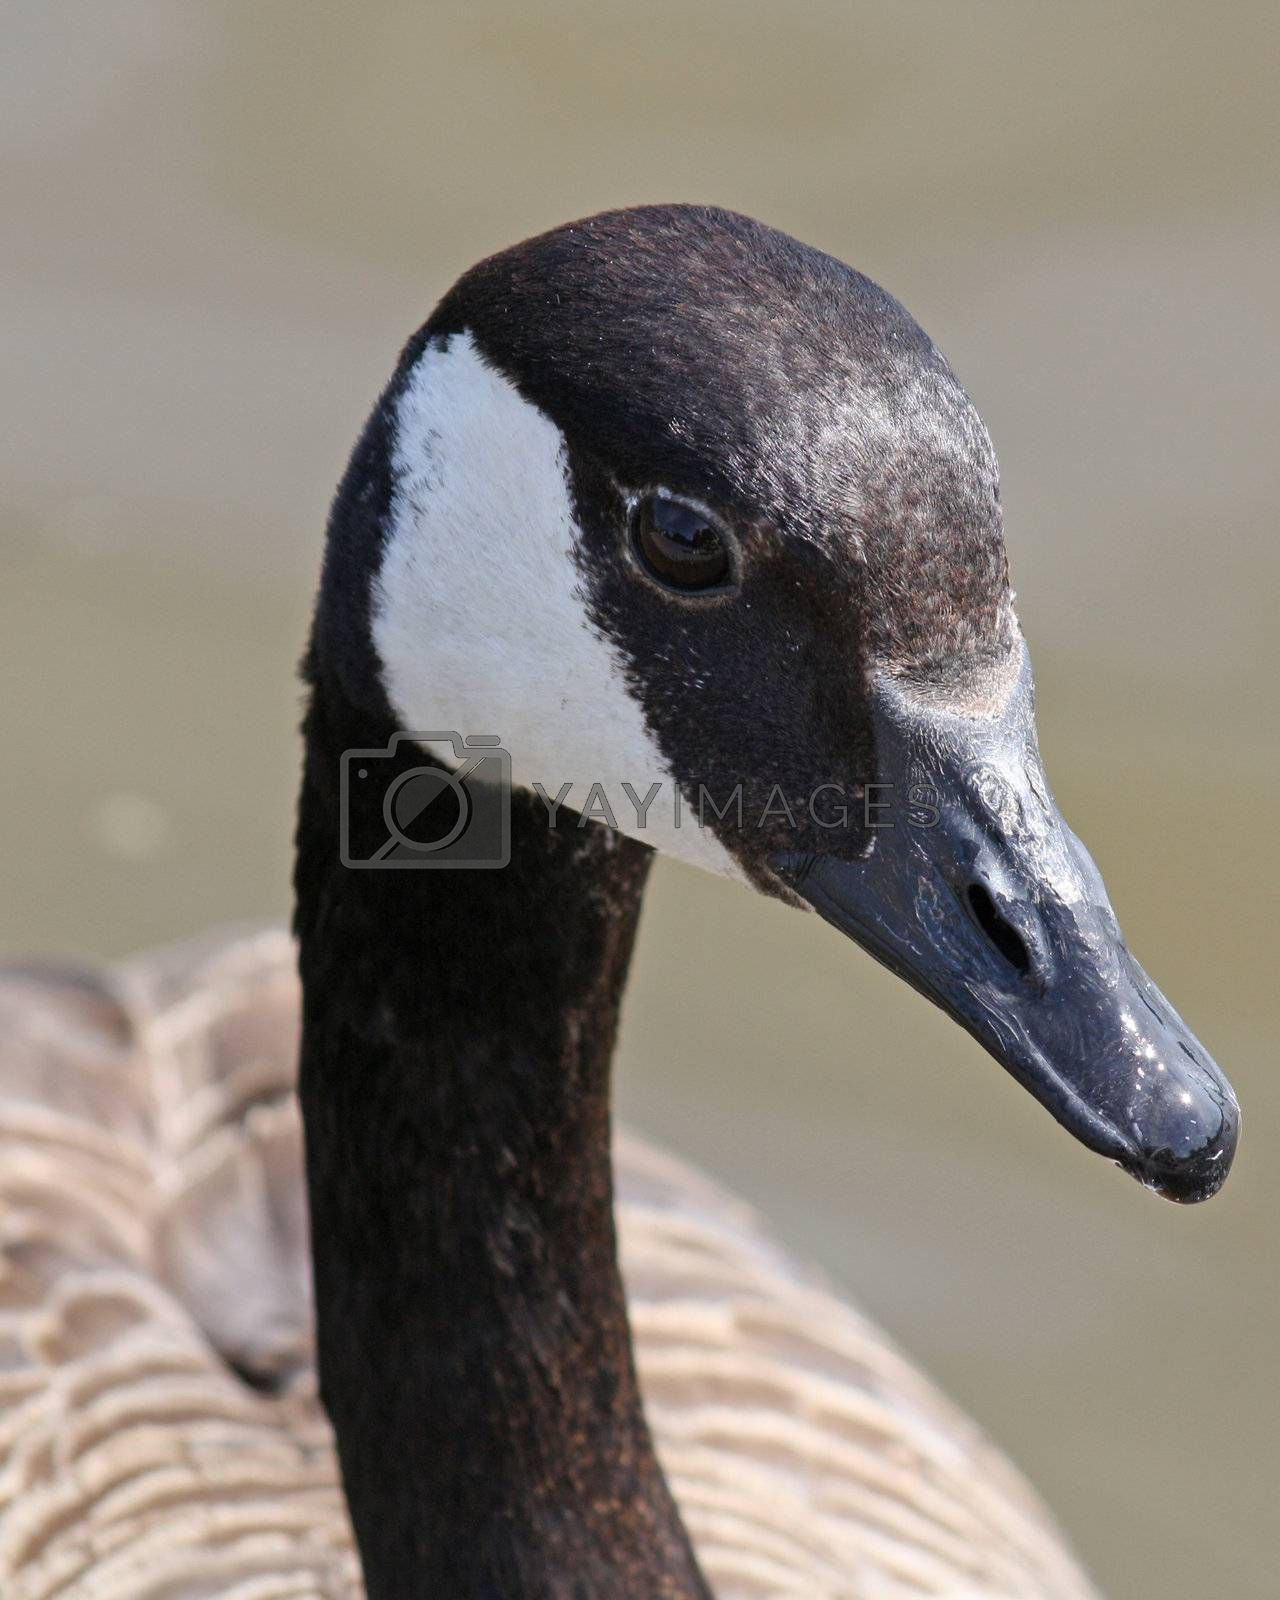 Royalty free image of close up duck 4 by lizapixels